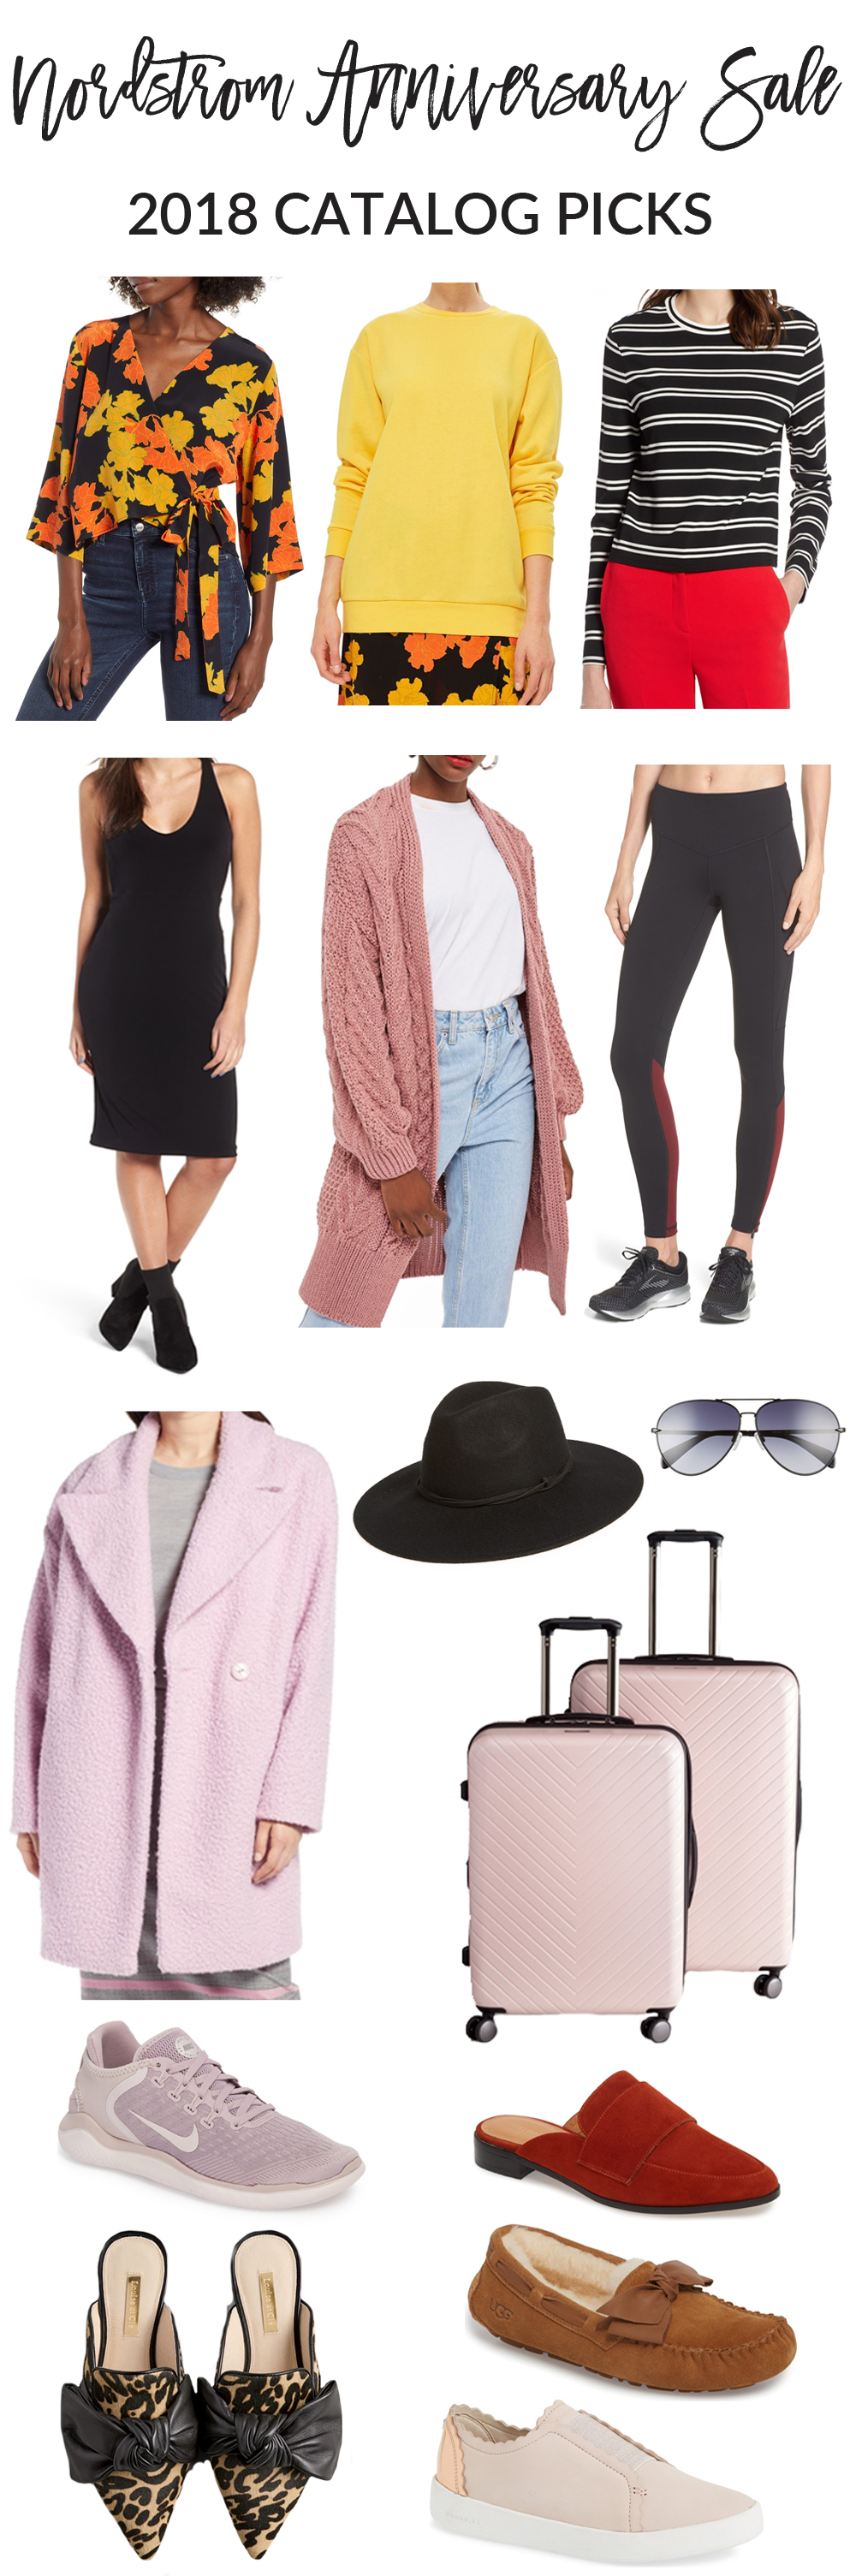 My Top Picks From The 2018 Nordstrom Anniversary Sale Catalog ...